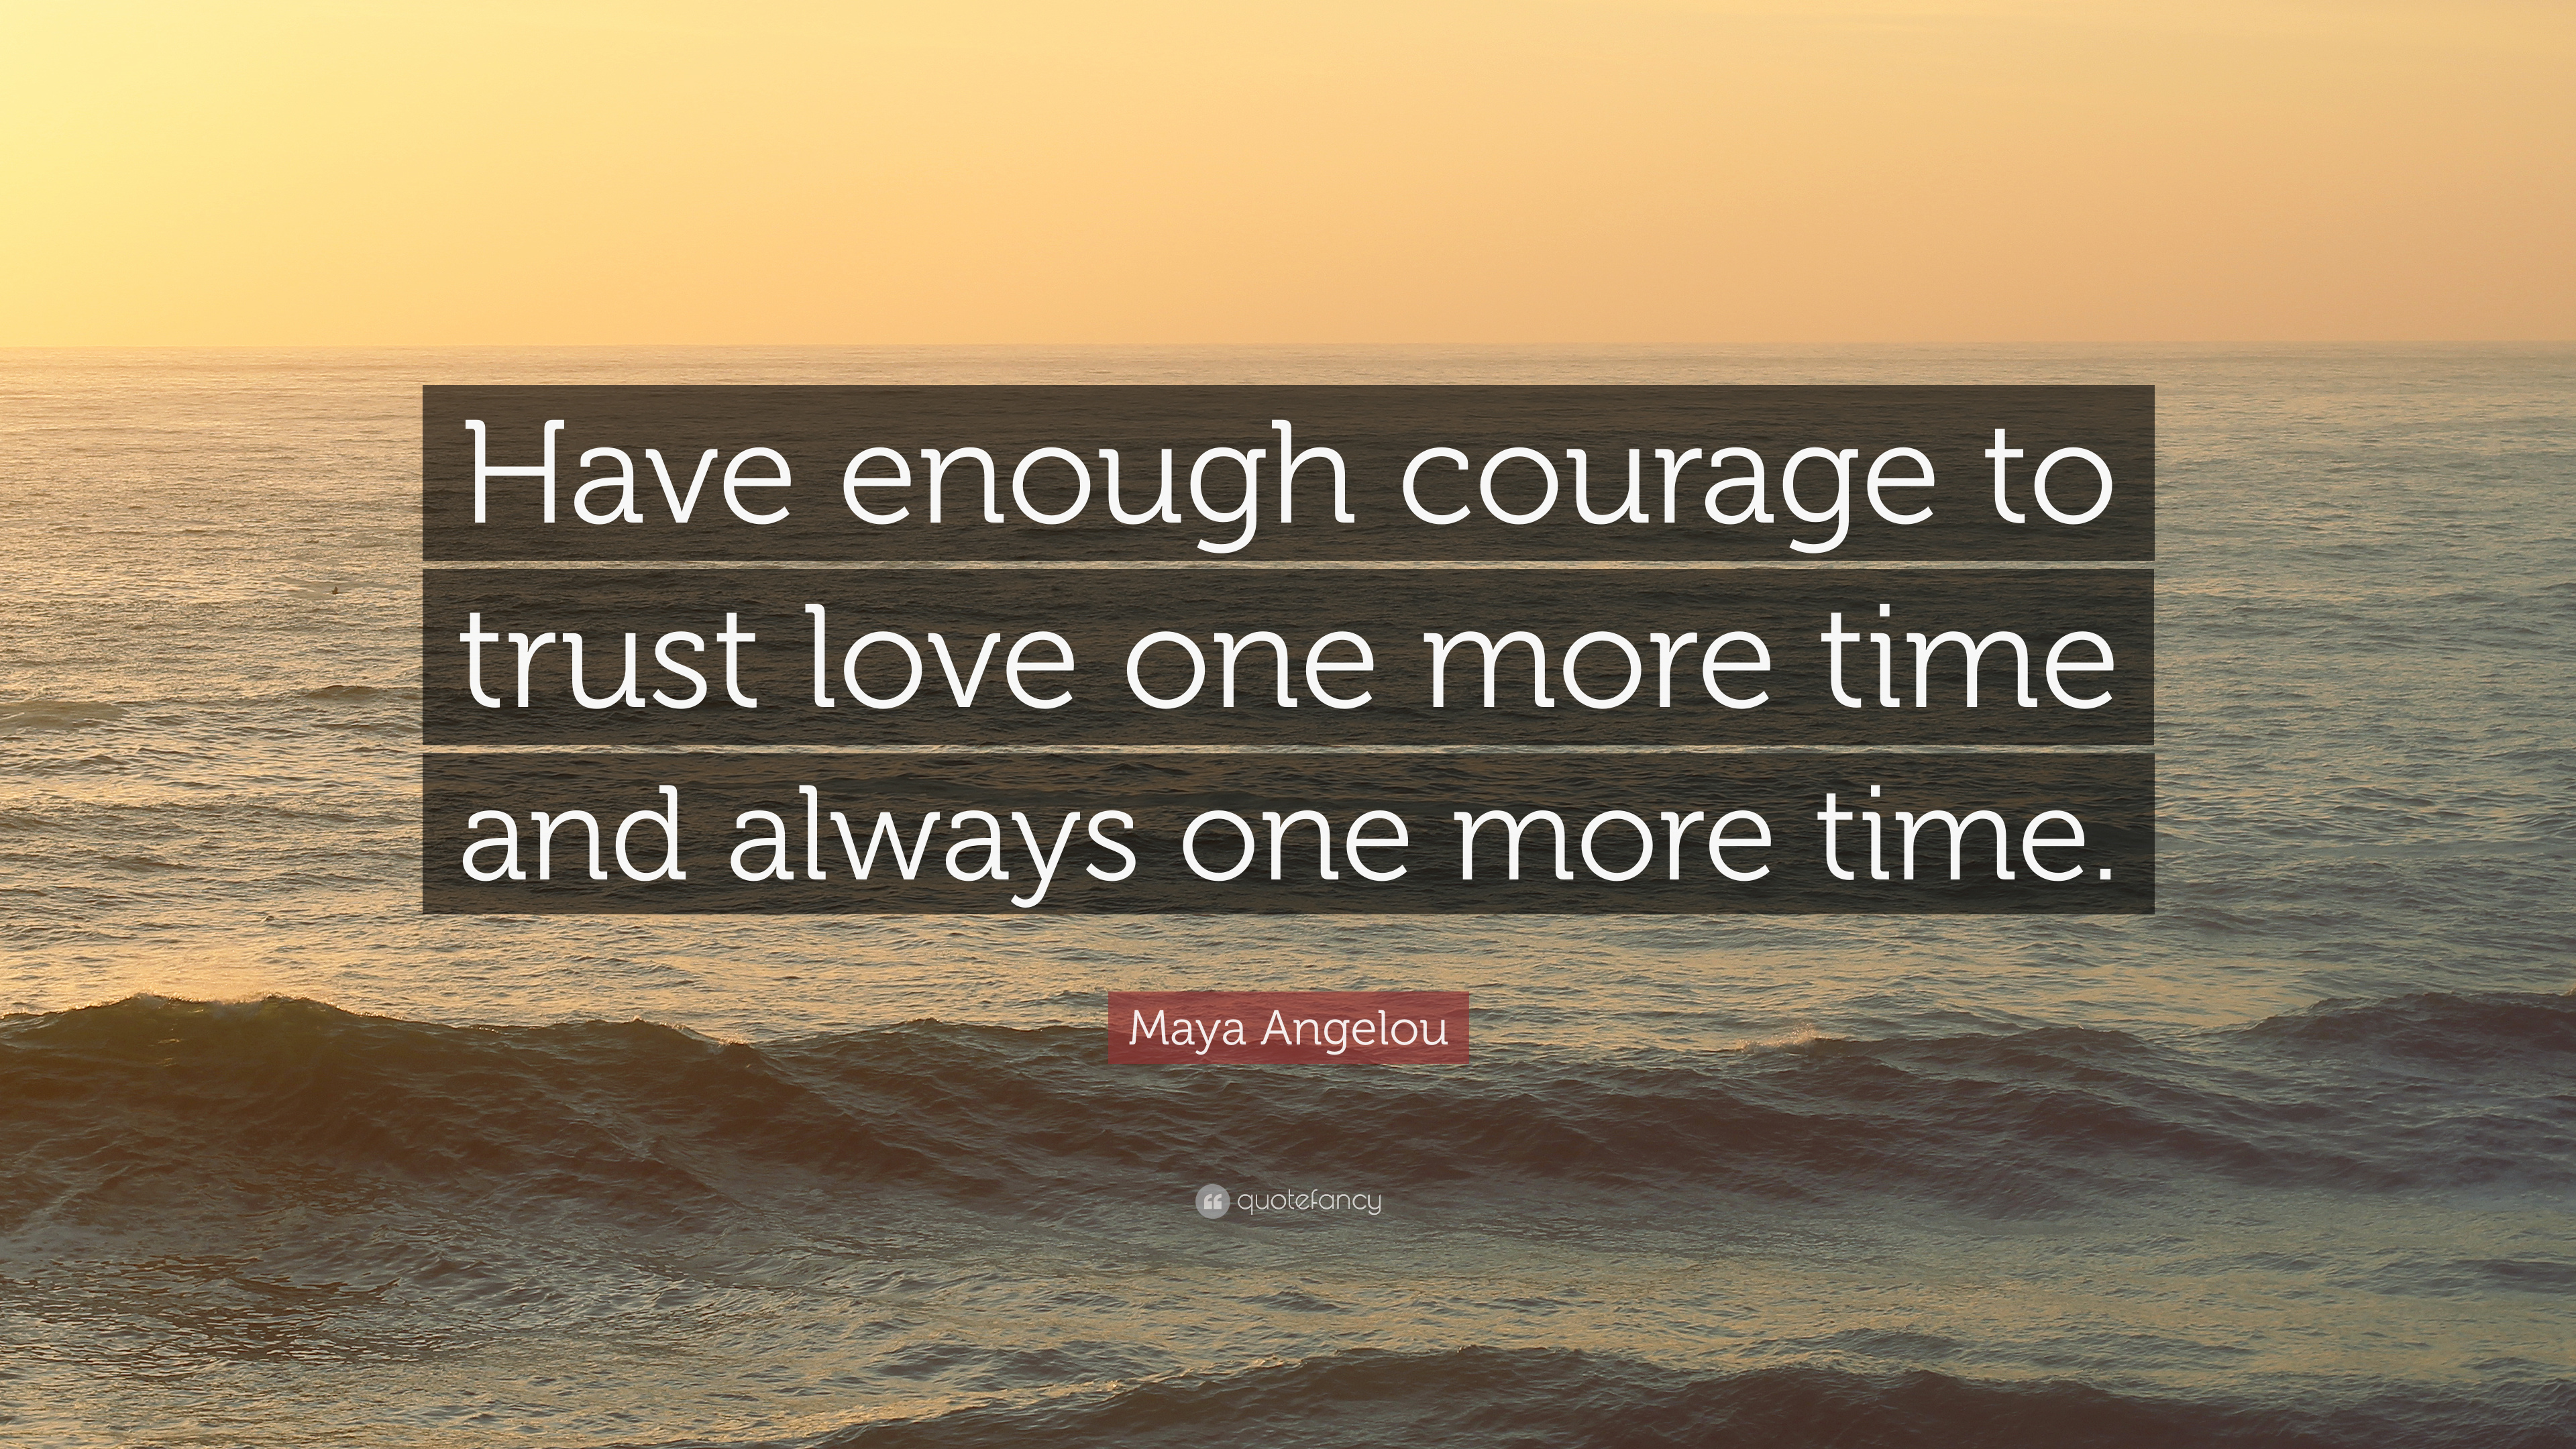 Image result for quote love maya angelou have enough courage